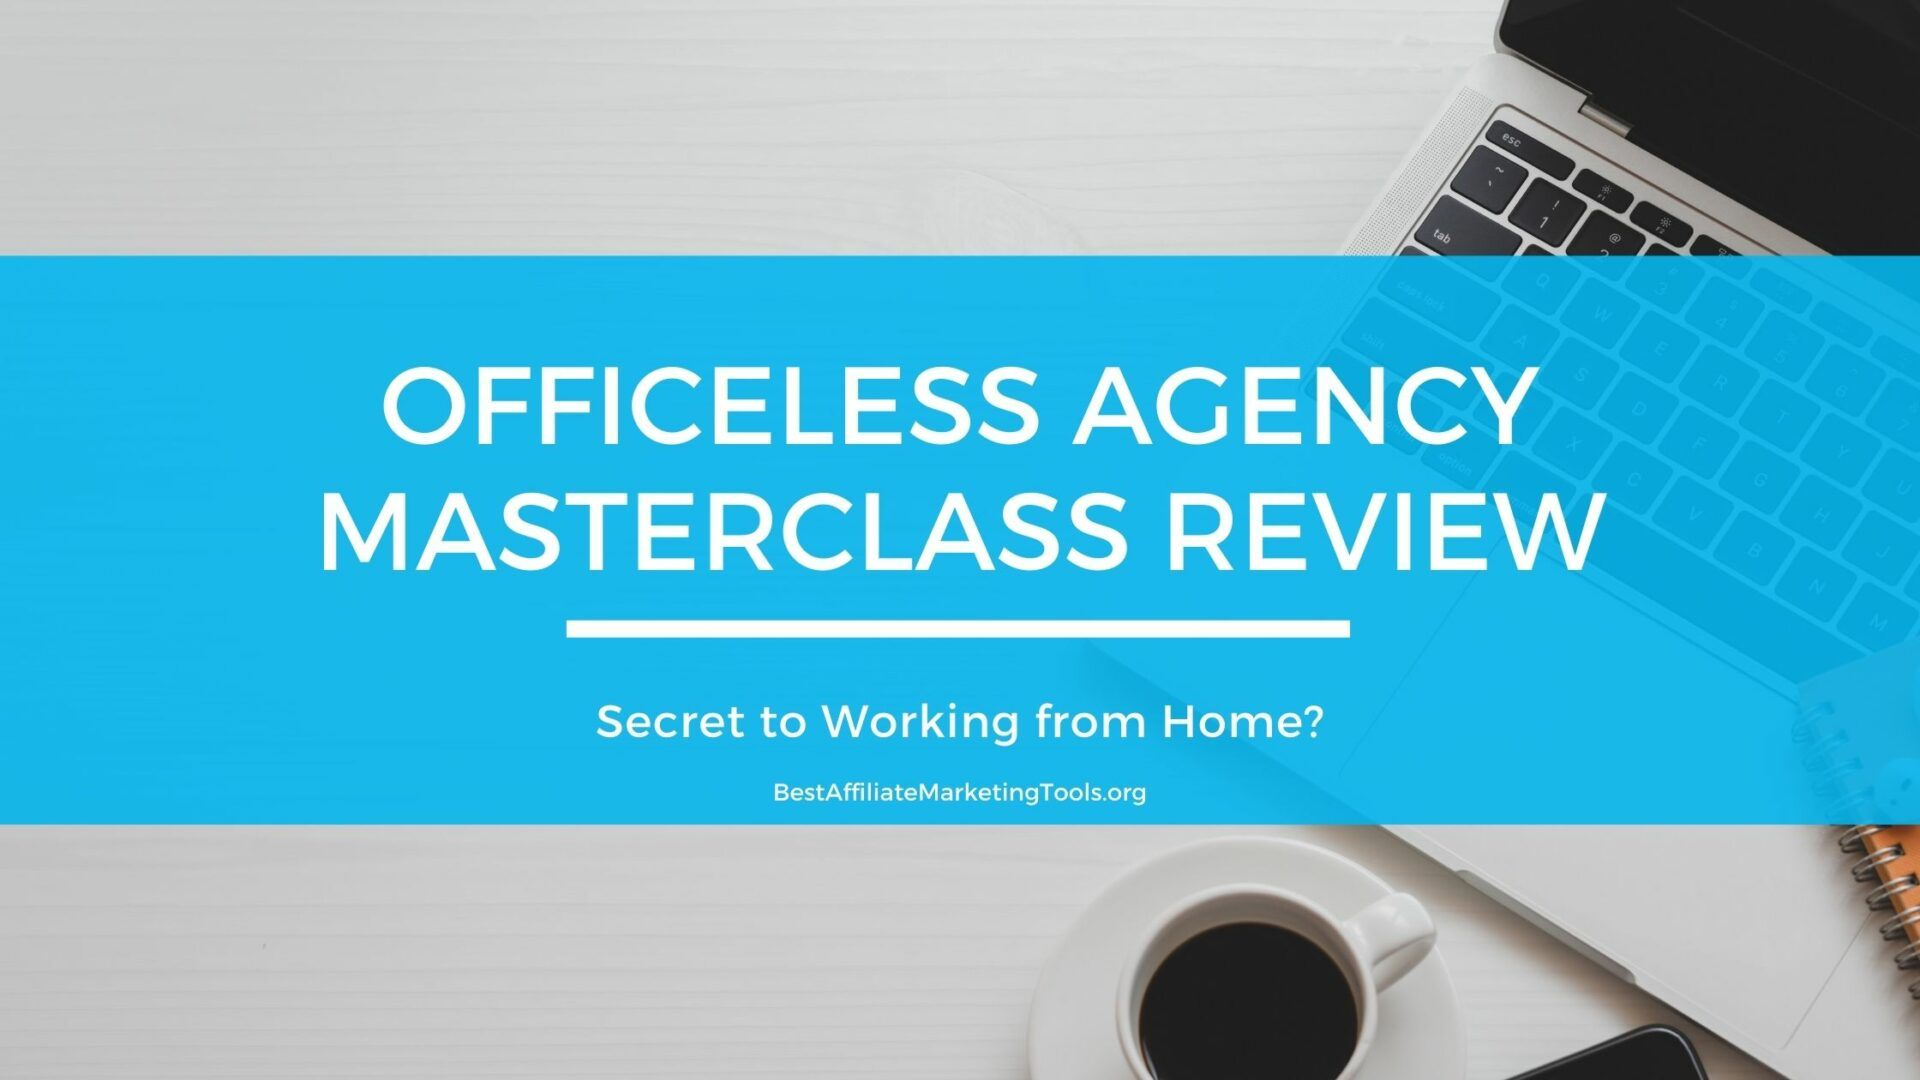 Officeless Agency Masterclass Review